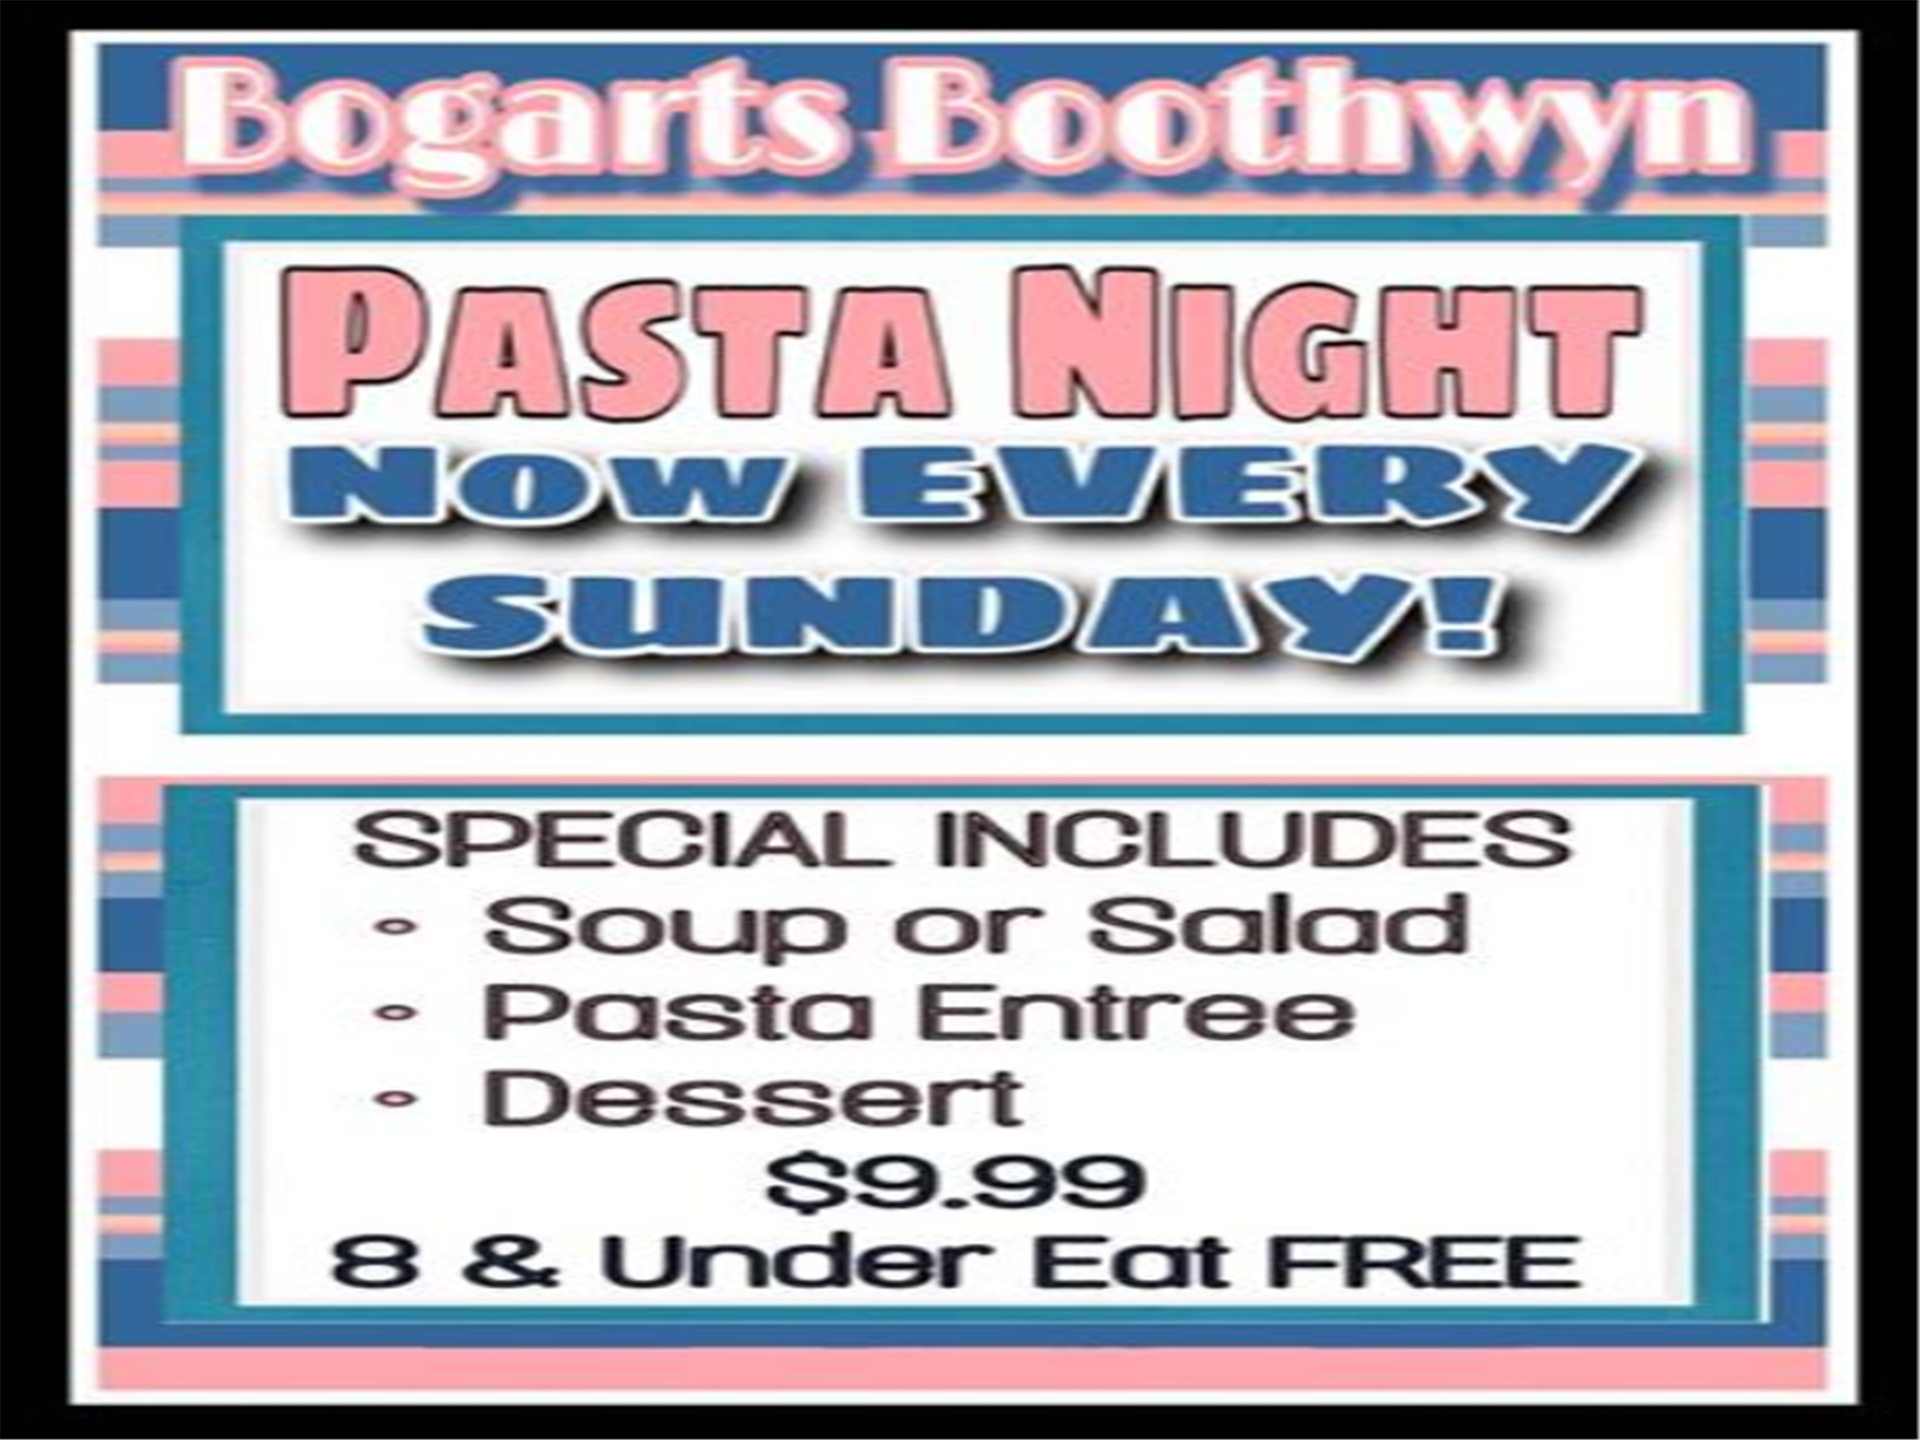 bogarts boothwyn - pasta night  now every sunday! special includes soup or salad, pasta entree, dessert $9.99 8 & under eat free